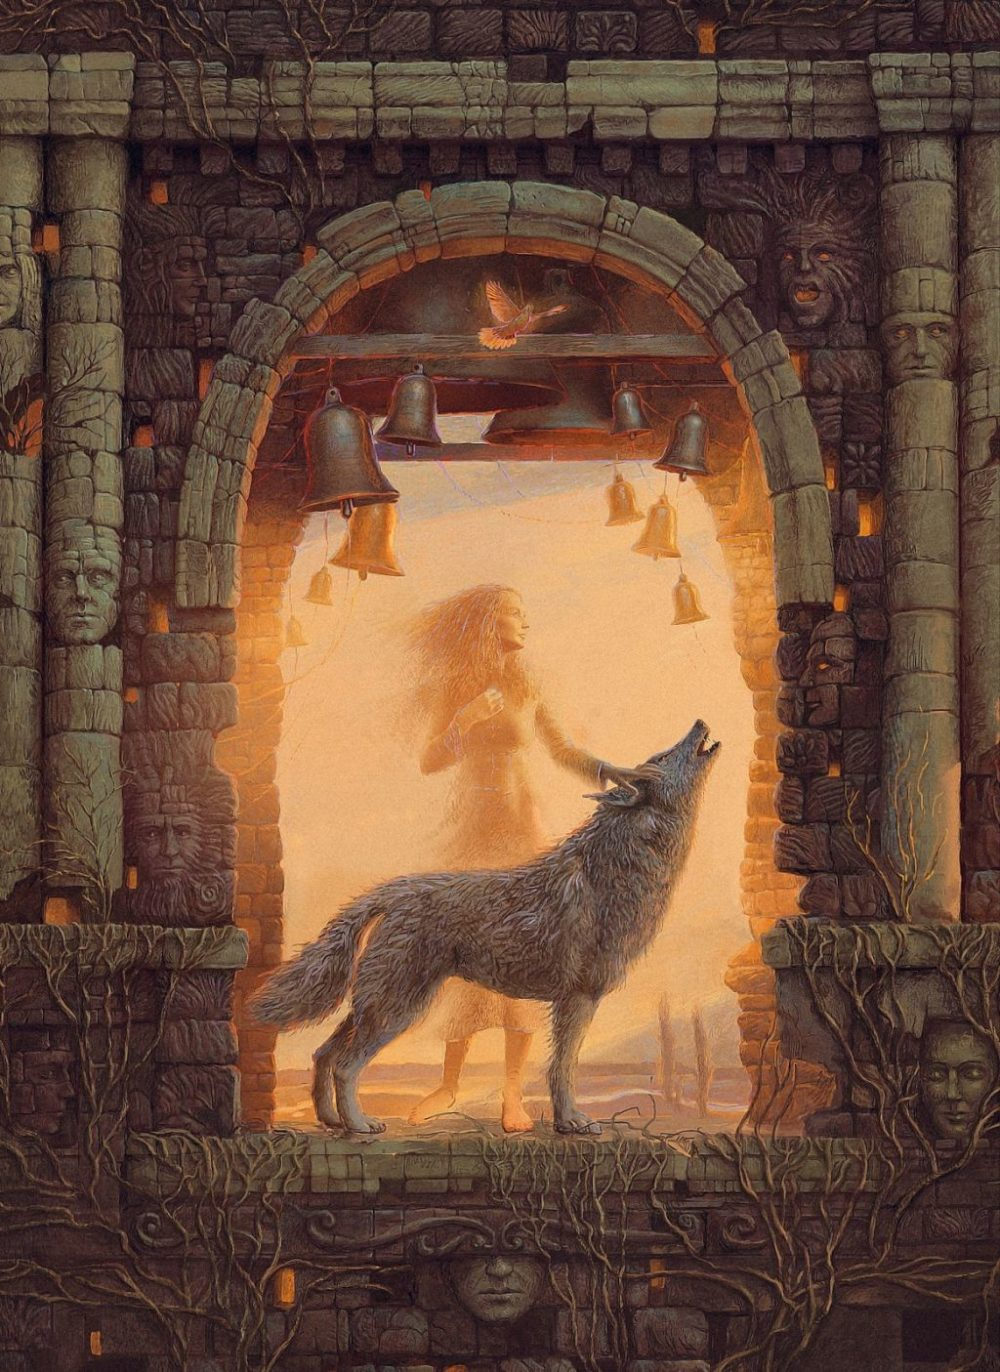 Surreal And Imaginative Book Illustrations By Andrew Ferez 2